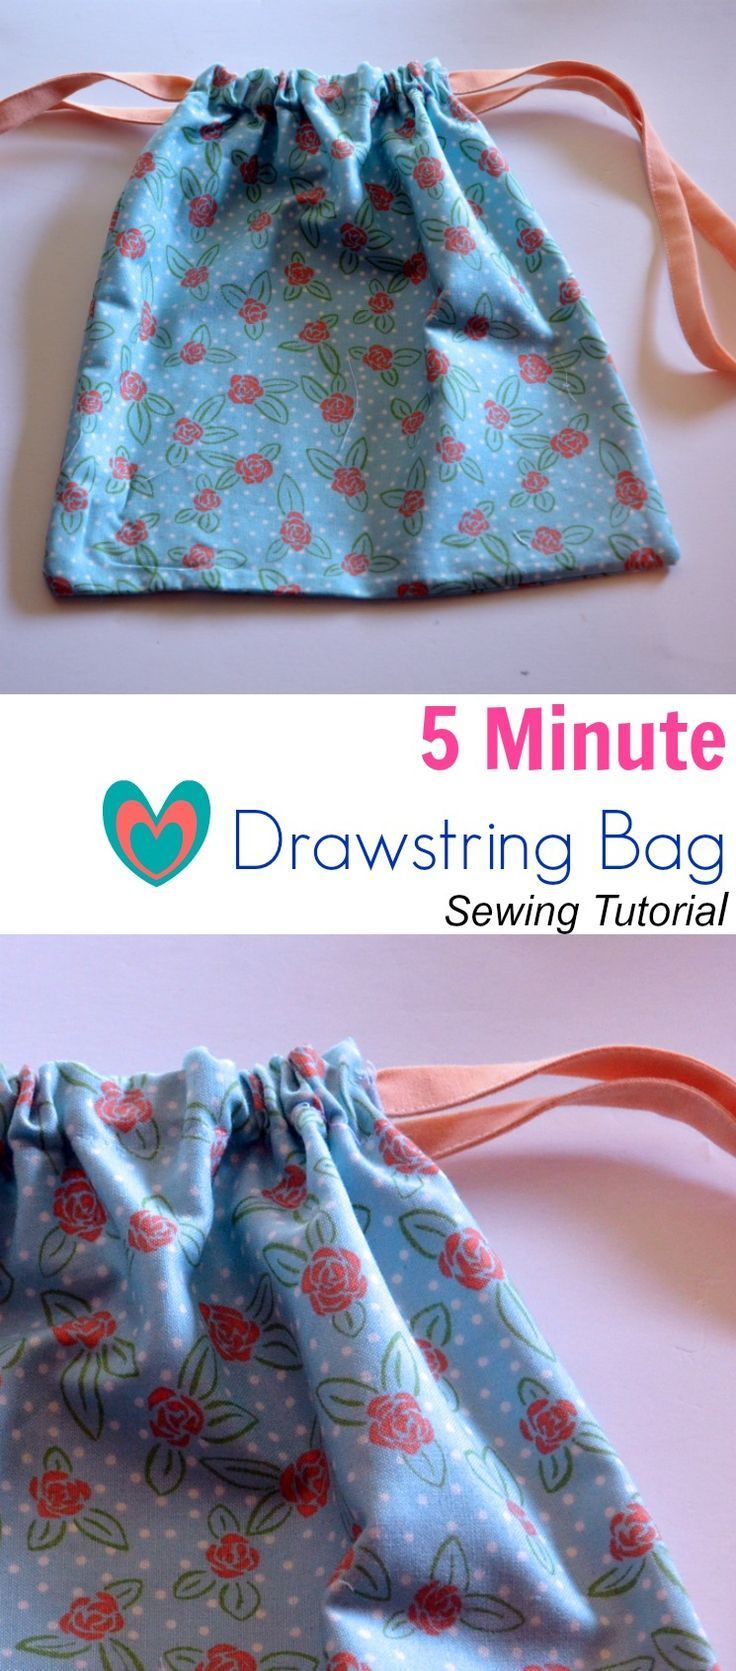 5 Minute Drawstring Bag Sewing Tutorial: Learn how to make this ...